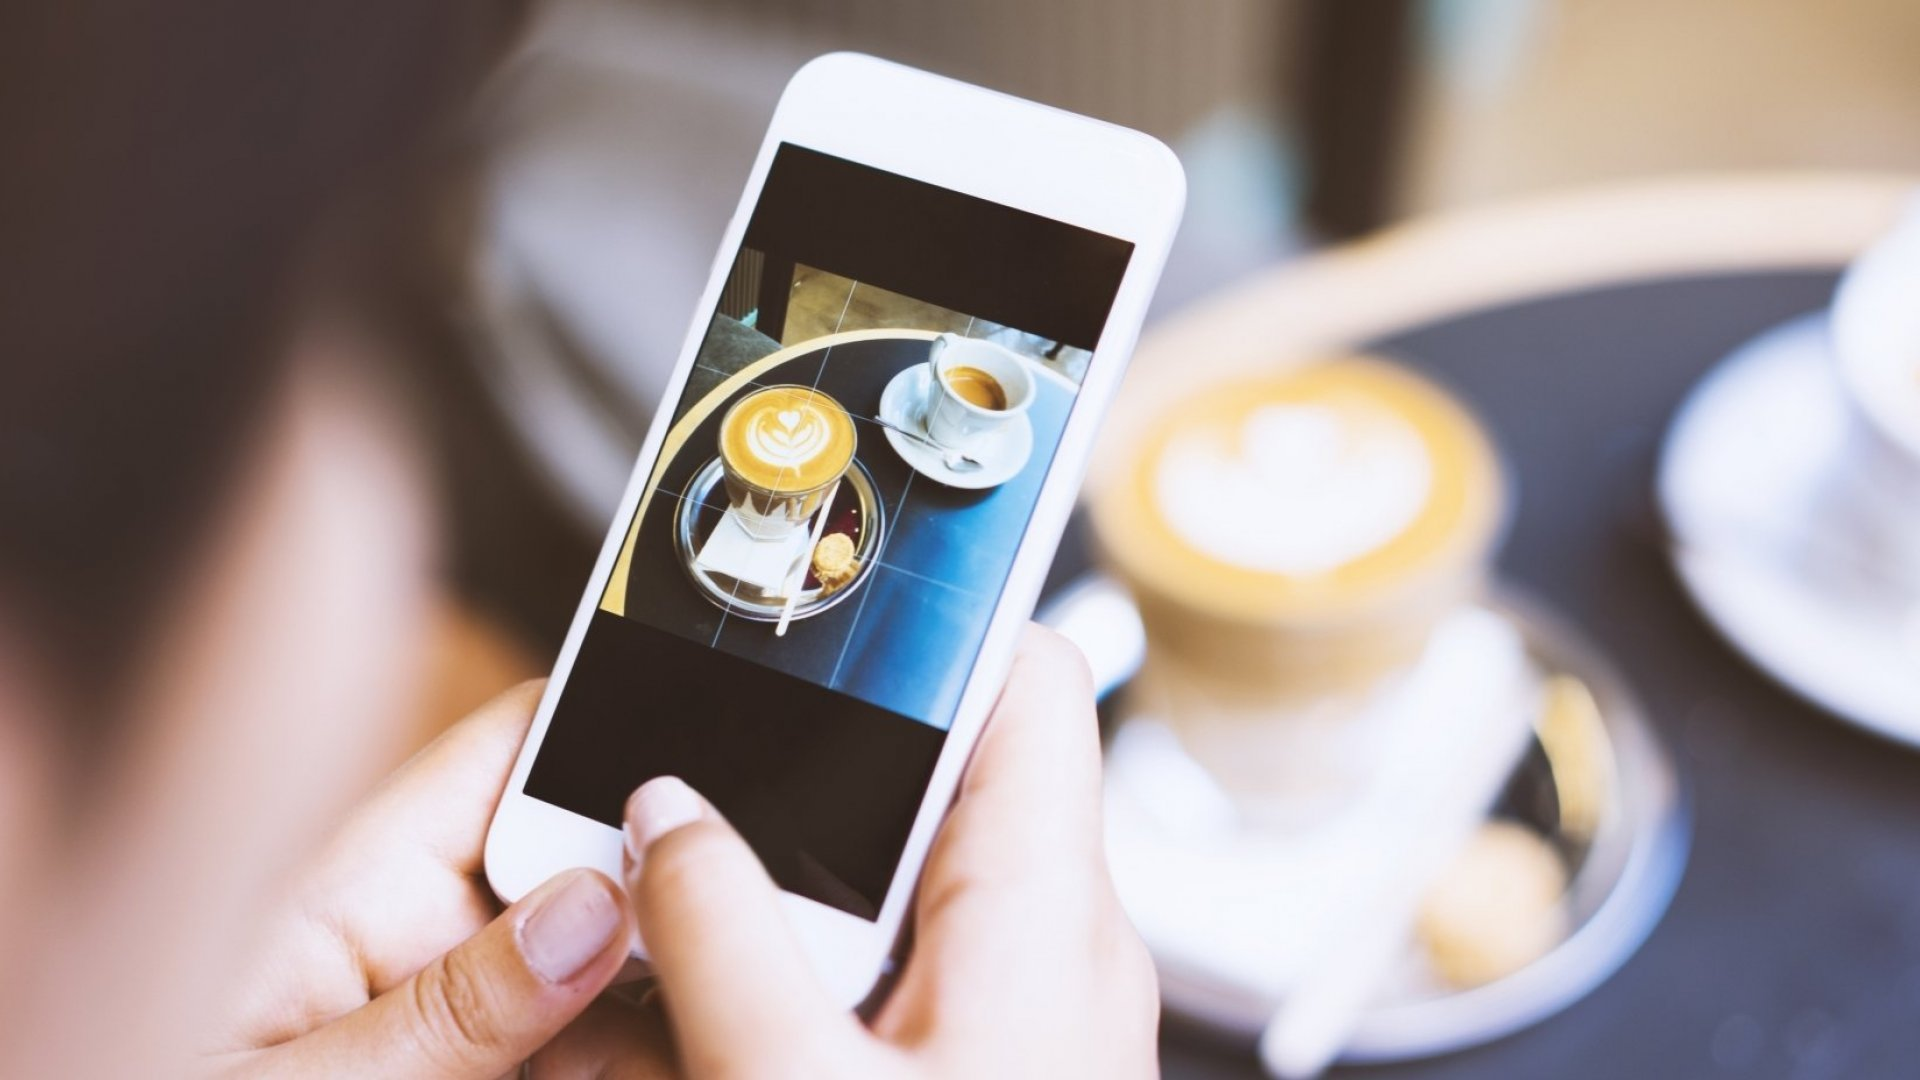 13 Clever Ways to Increase Your Instagram Engagement